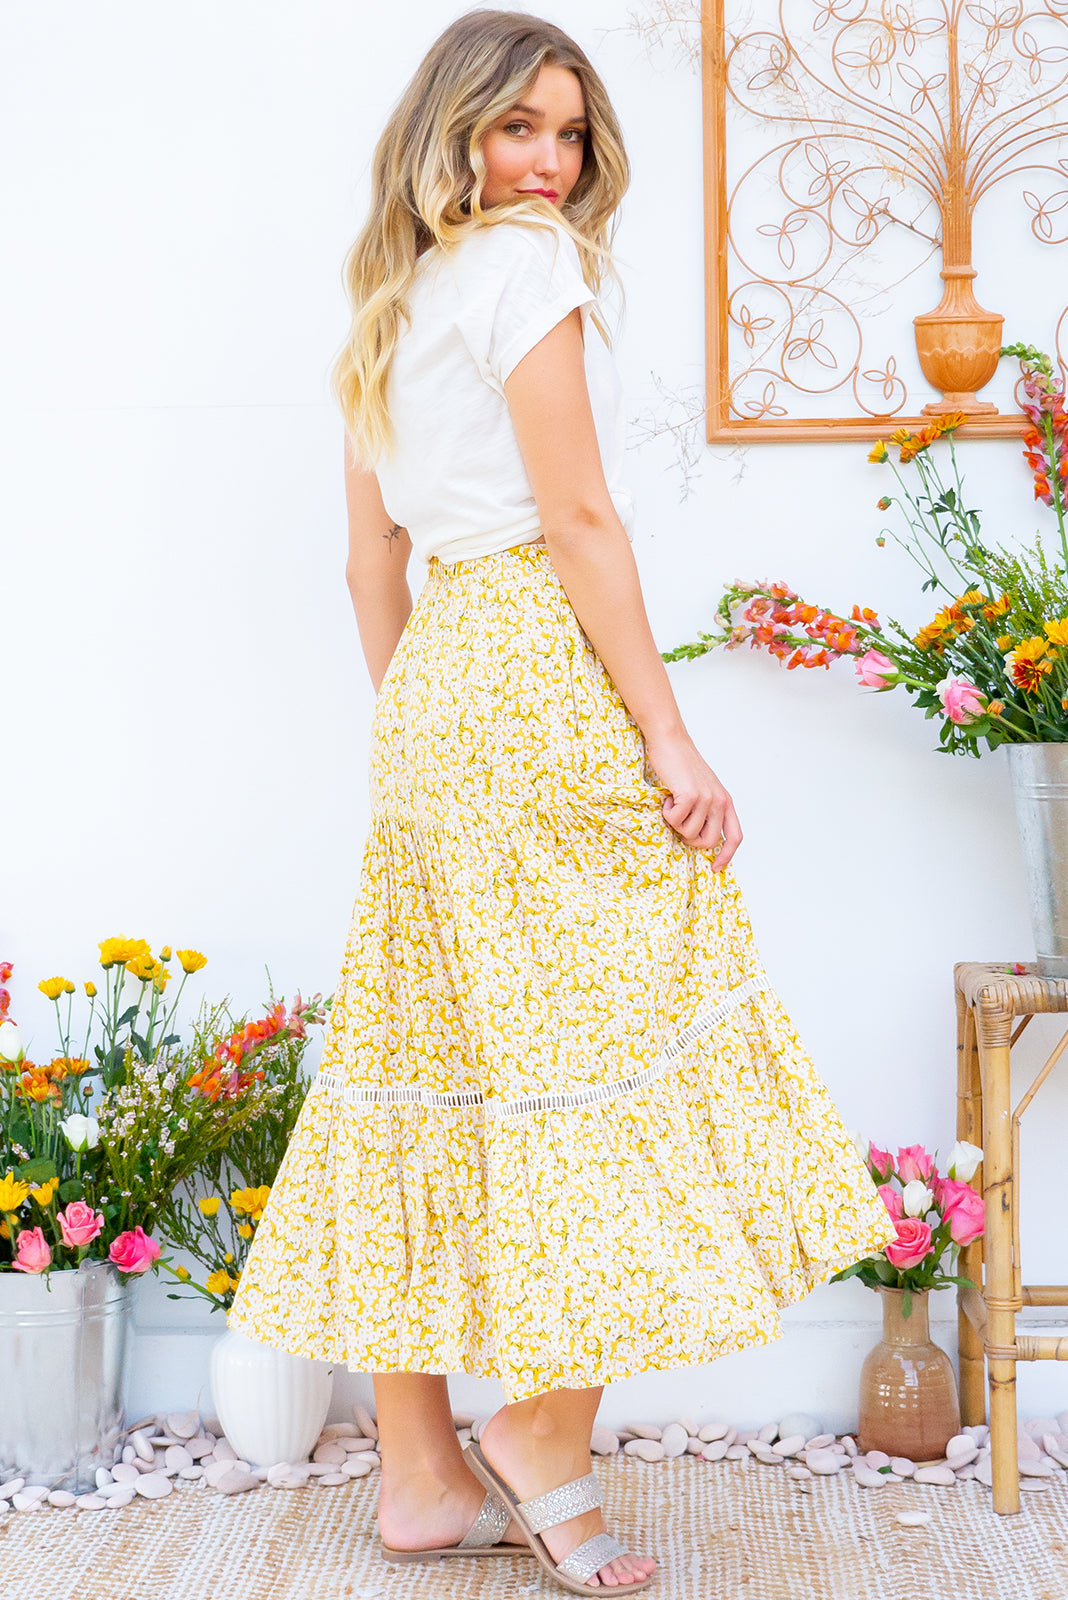 Bonnie Sunshine Daisy Maxi Skirt is a tiered skirt and features an elasticated waist, side pockets and cotton insertion lace and it comes in a yellow and white floral bohemian print